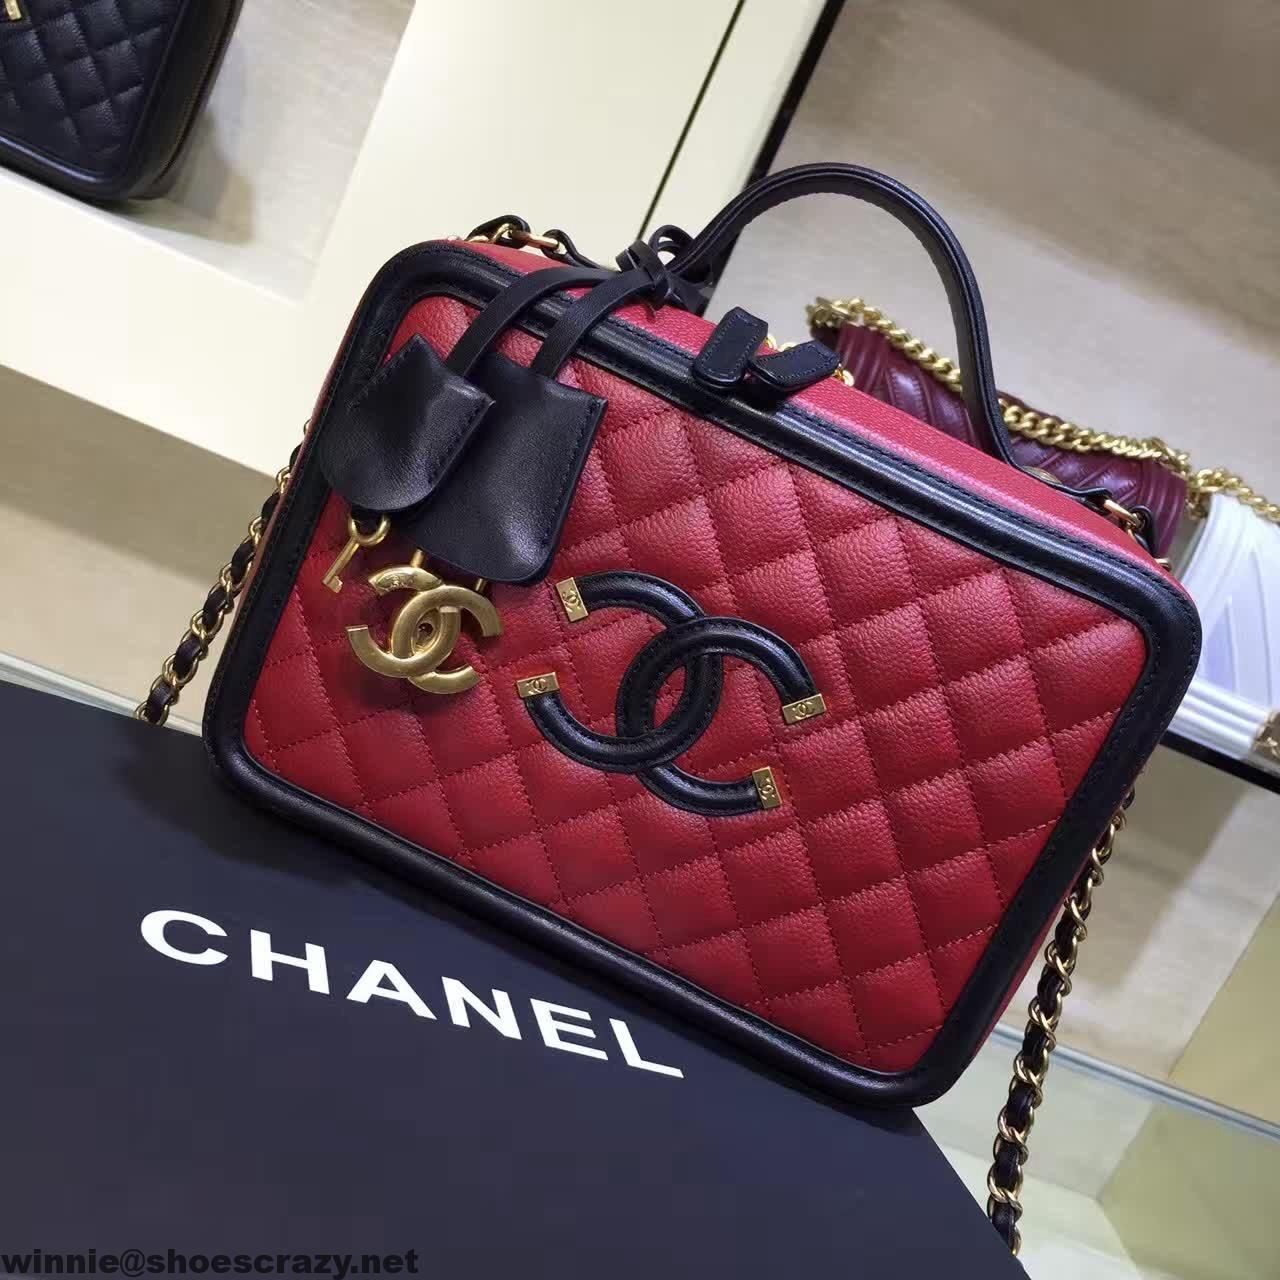 Chanel Cc Filigree Vanity Case Medium Bag Chanel In 2019